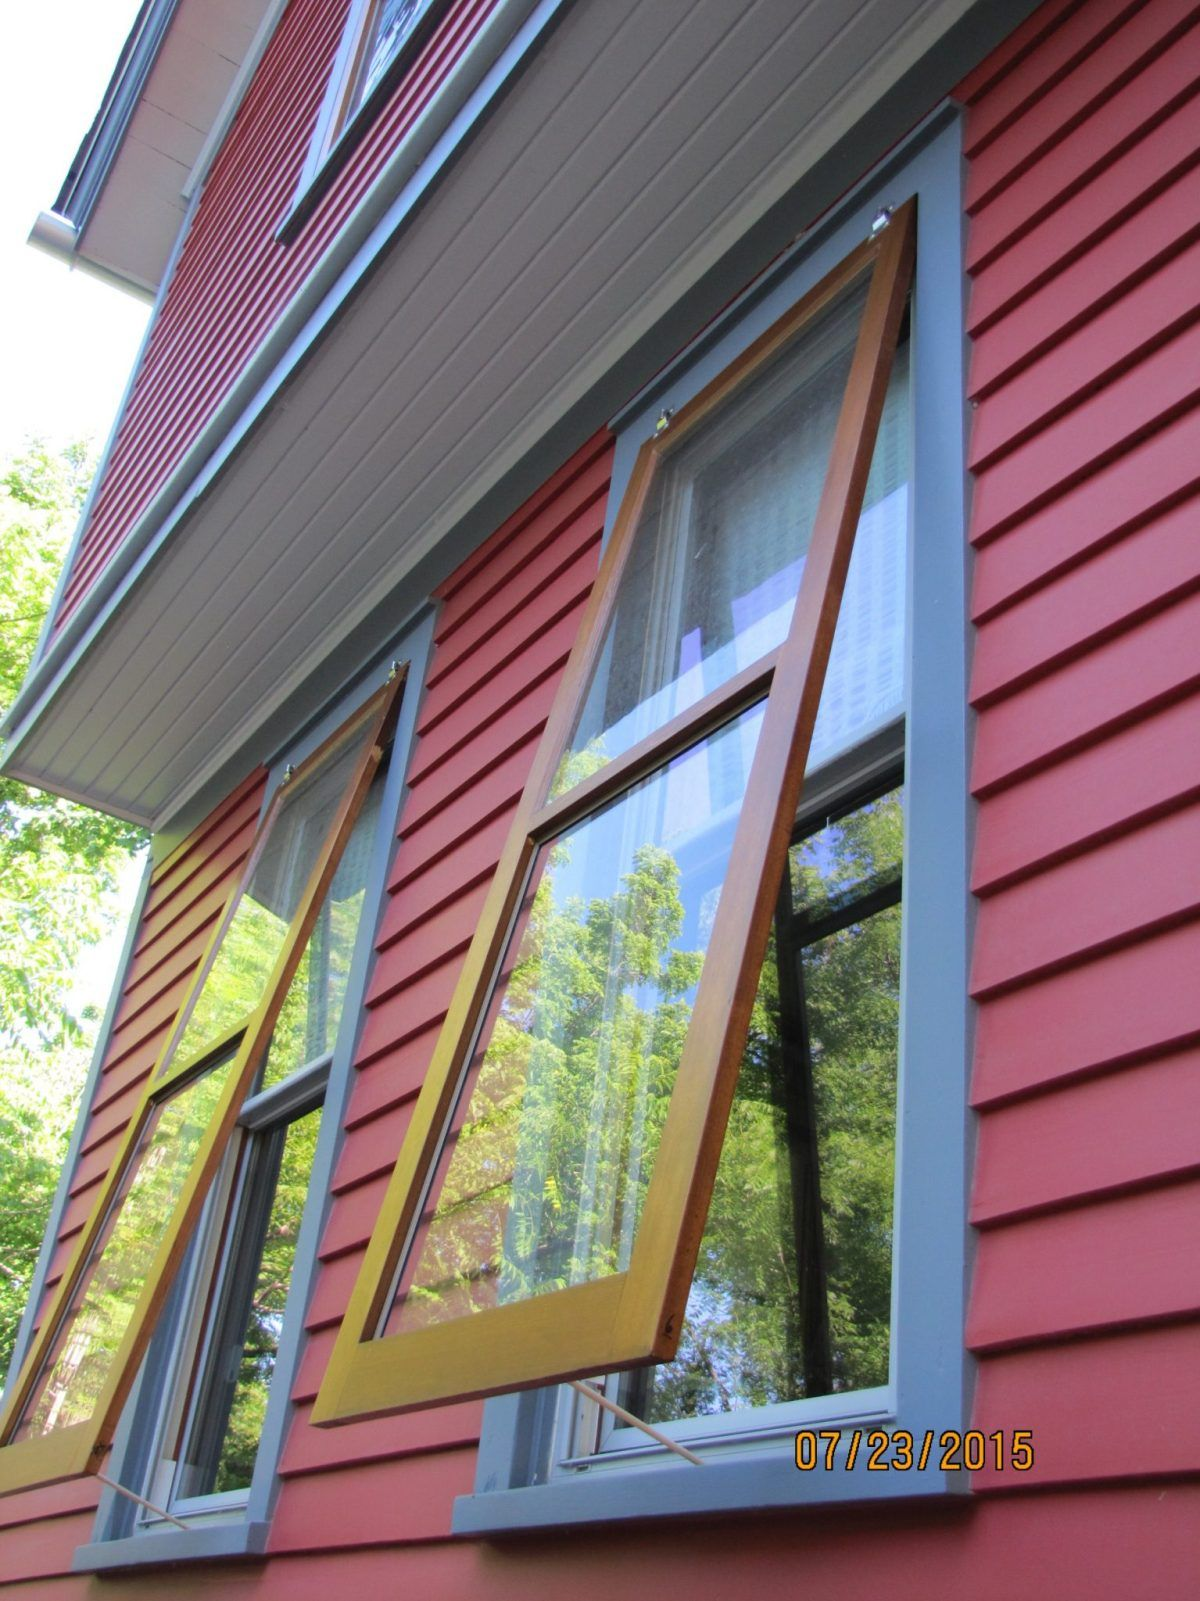 The Best Wood Storm Window Really My Old House Fix Interior Storm Windows Windows Exterior Windows